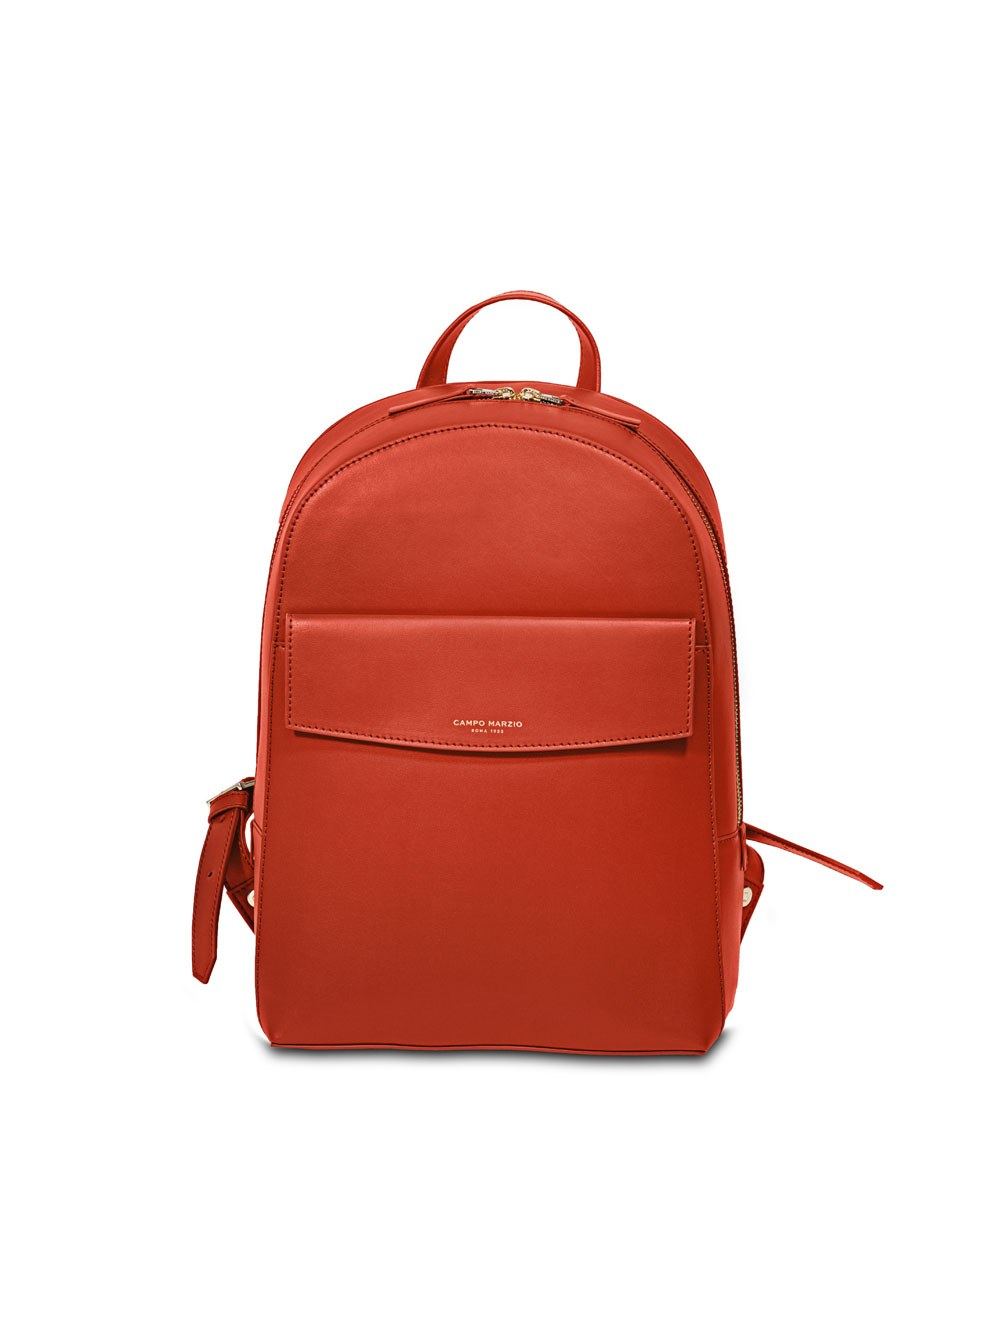 Business Backpack With Front Pocket - Tangerine Tango